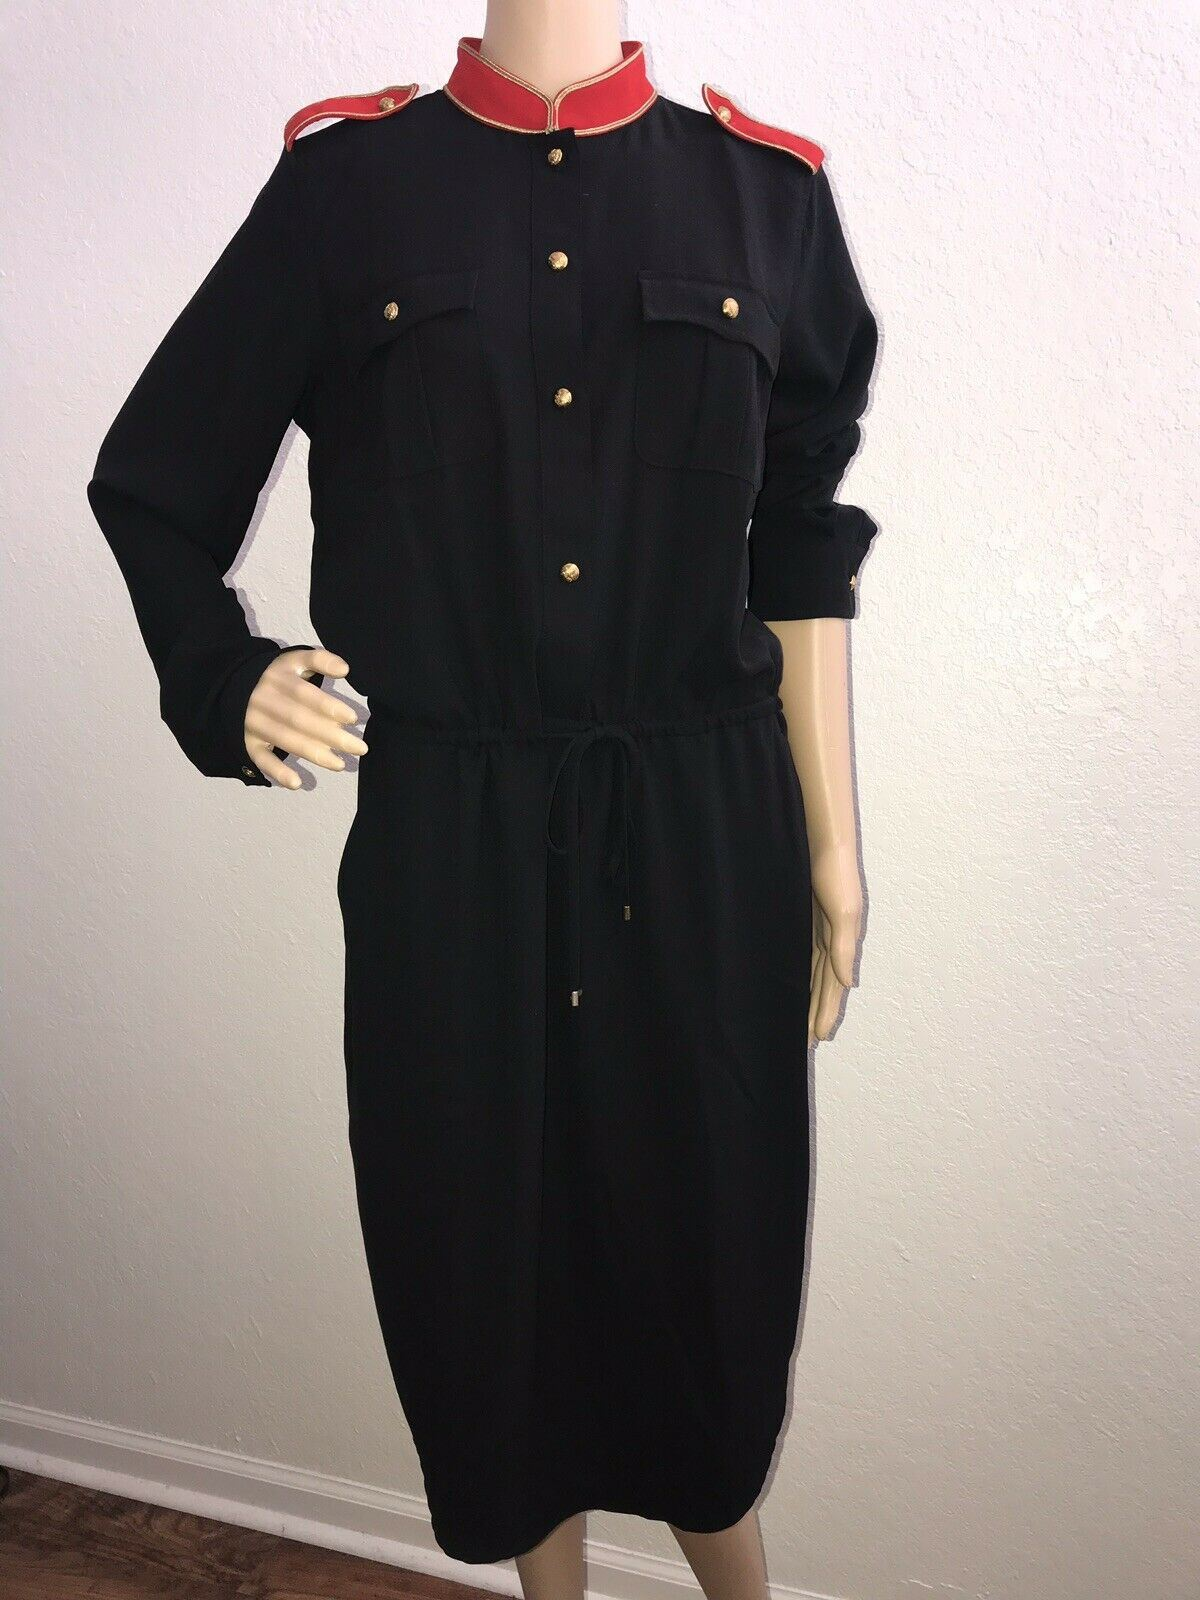 NWT $225 Polo Ralph Lauren Women's Black Georgette Shirt Dress Size 10